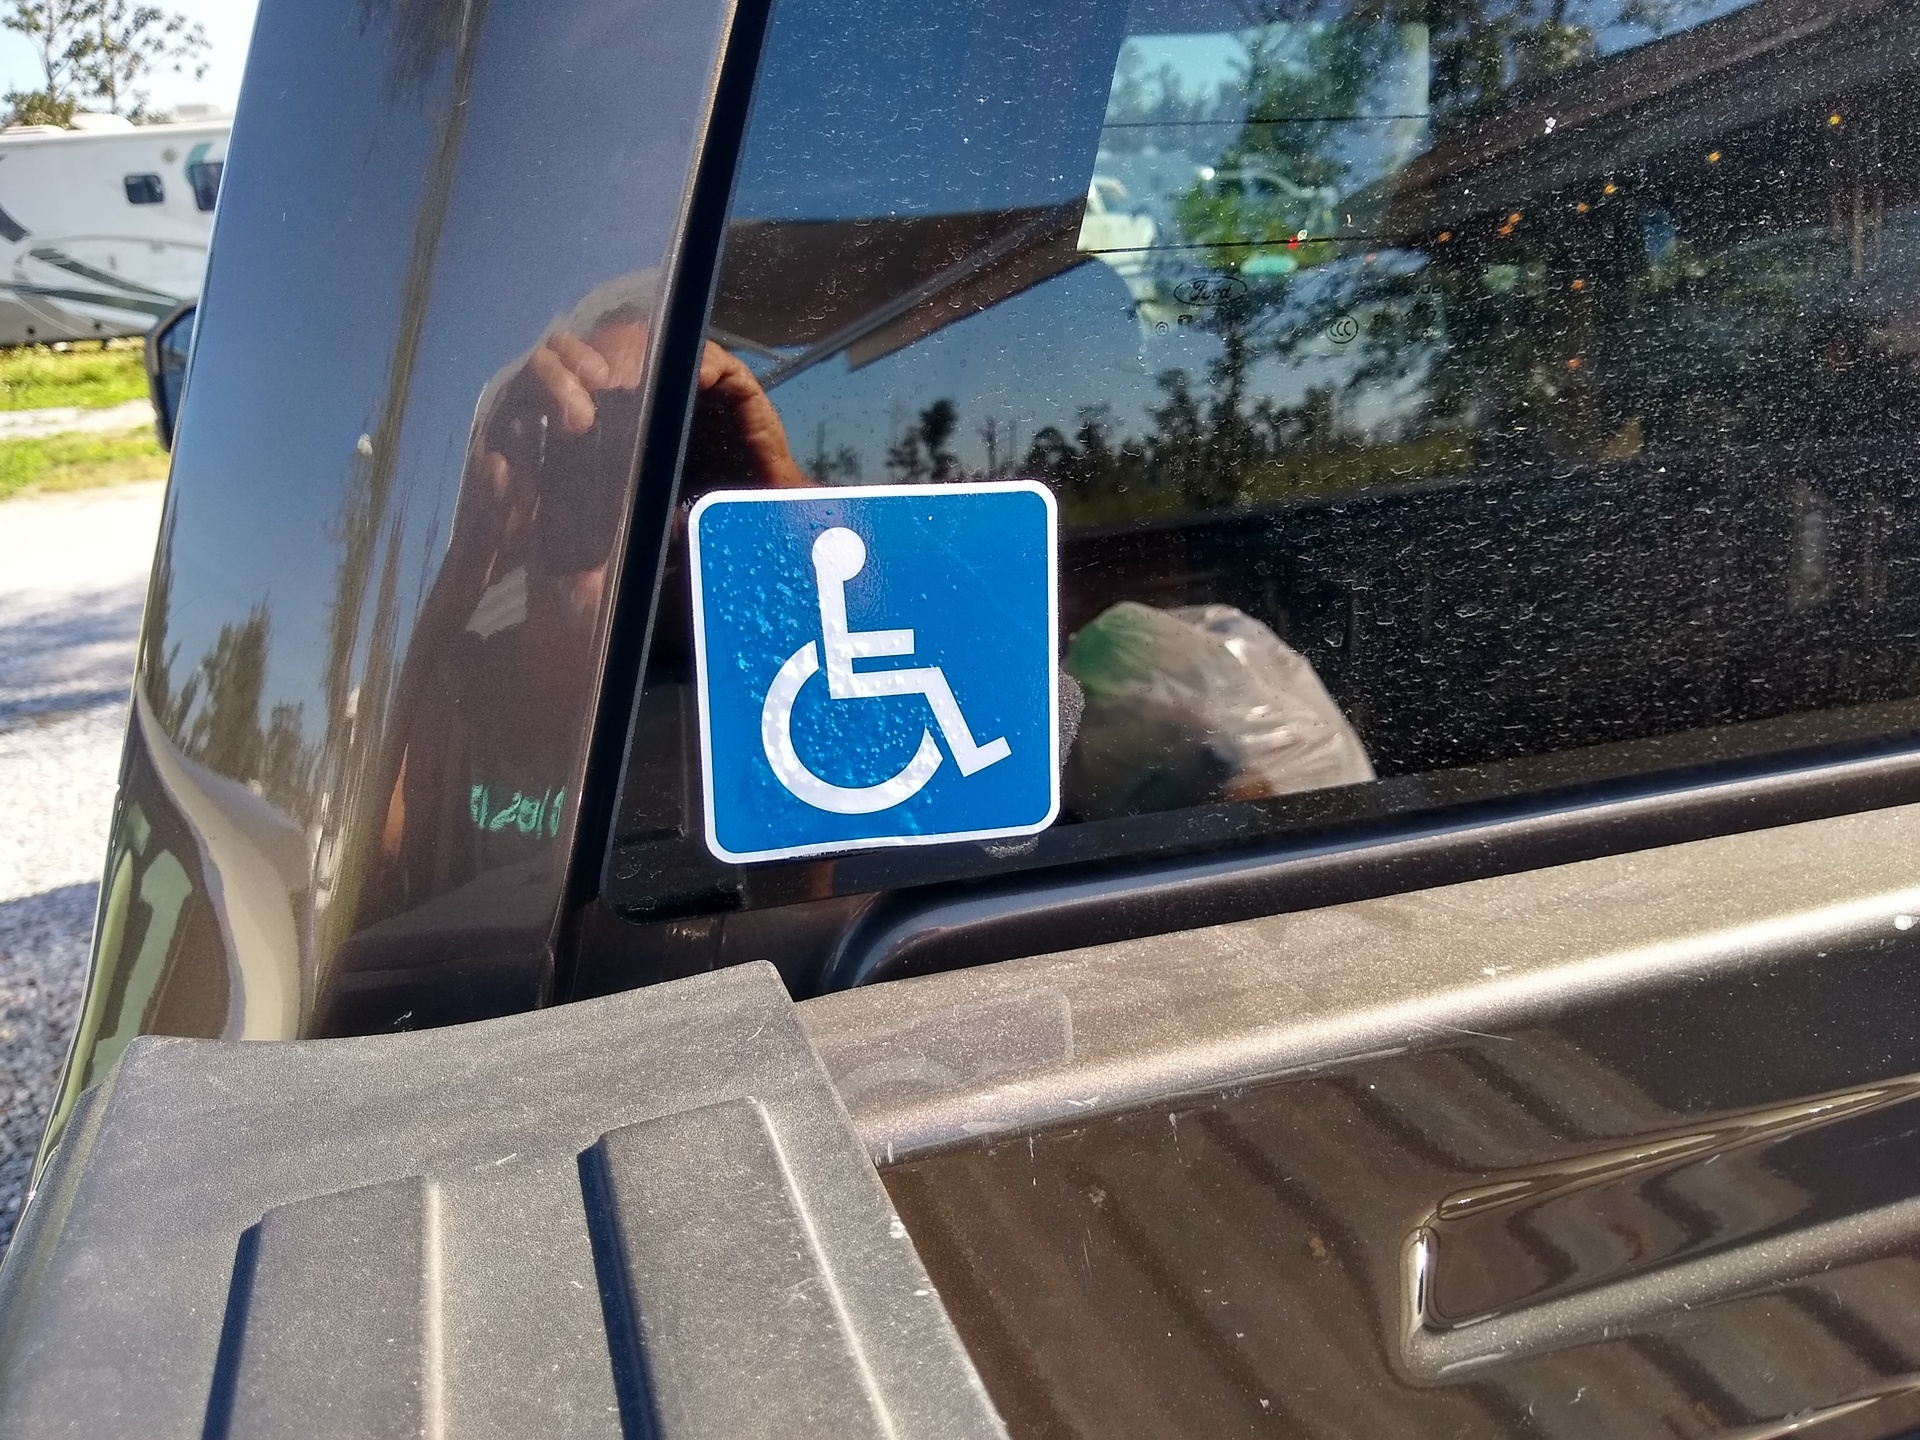 Charles's photograph of their Handicapped Sticker